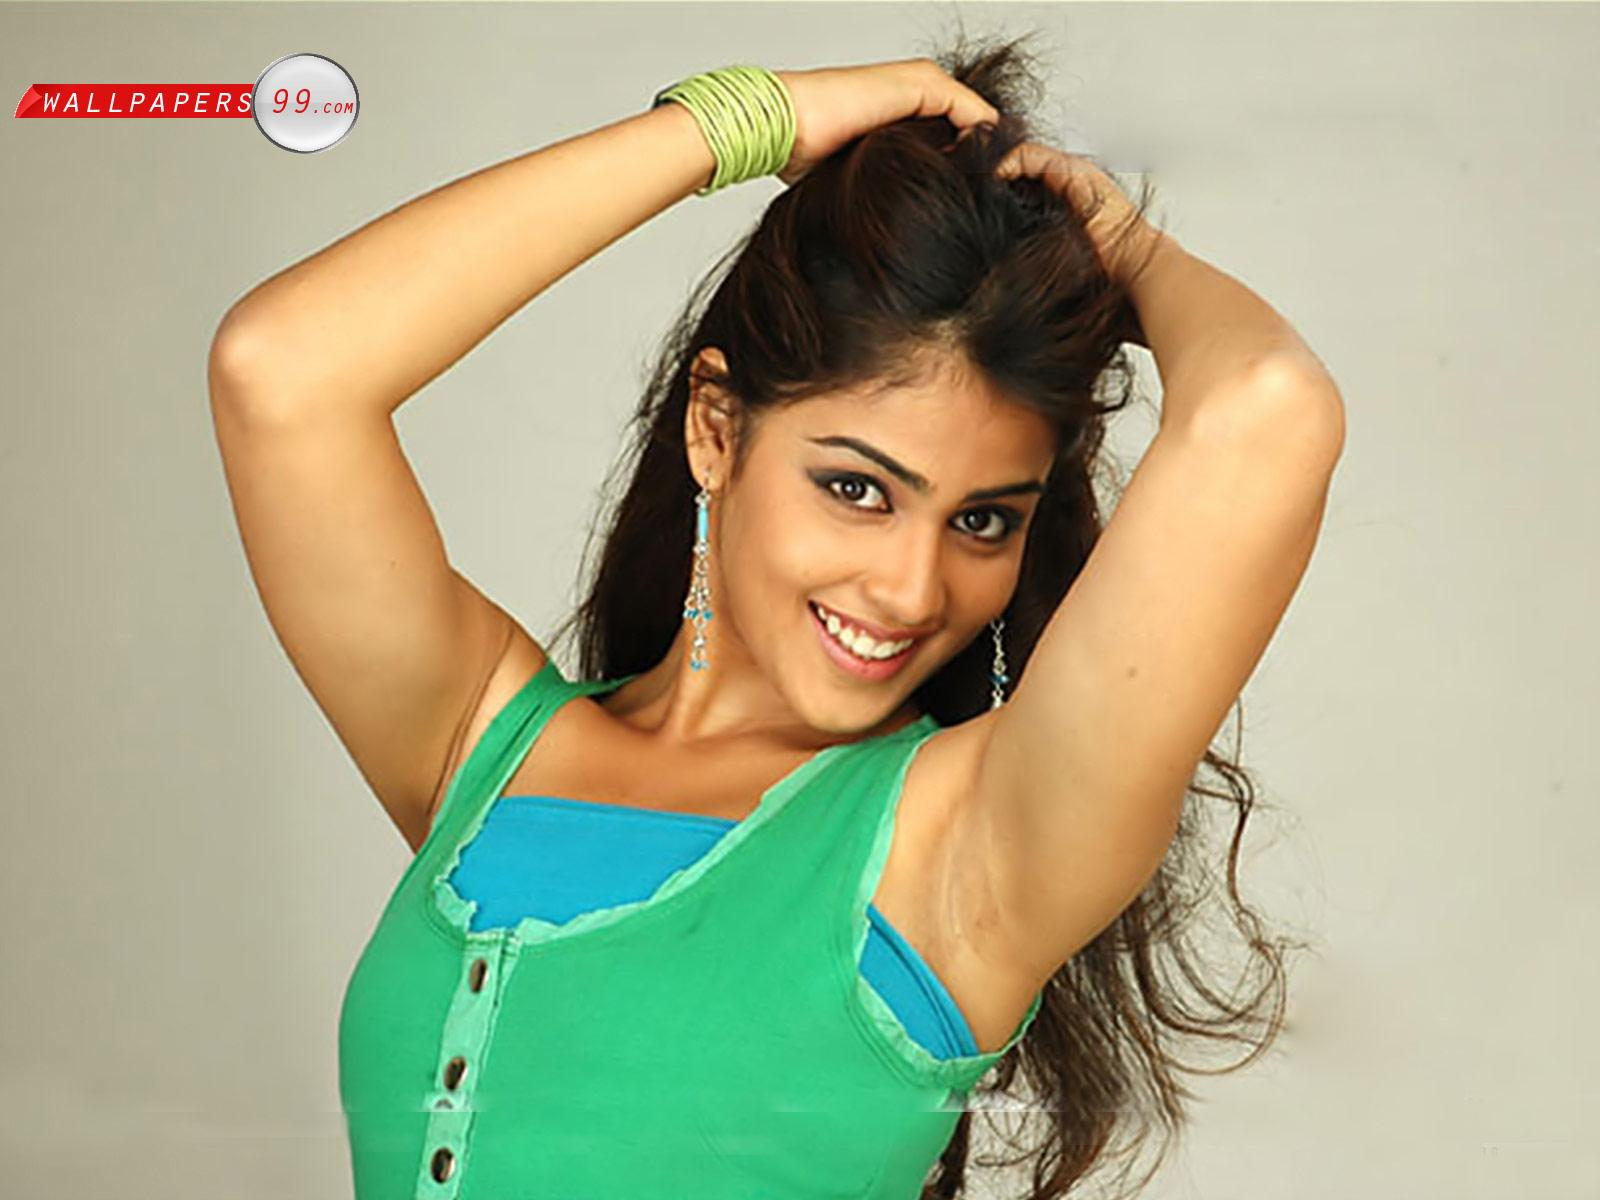 Tamil Actress Navel And Hot Pics: For Armpit Lovers